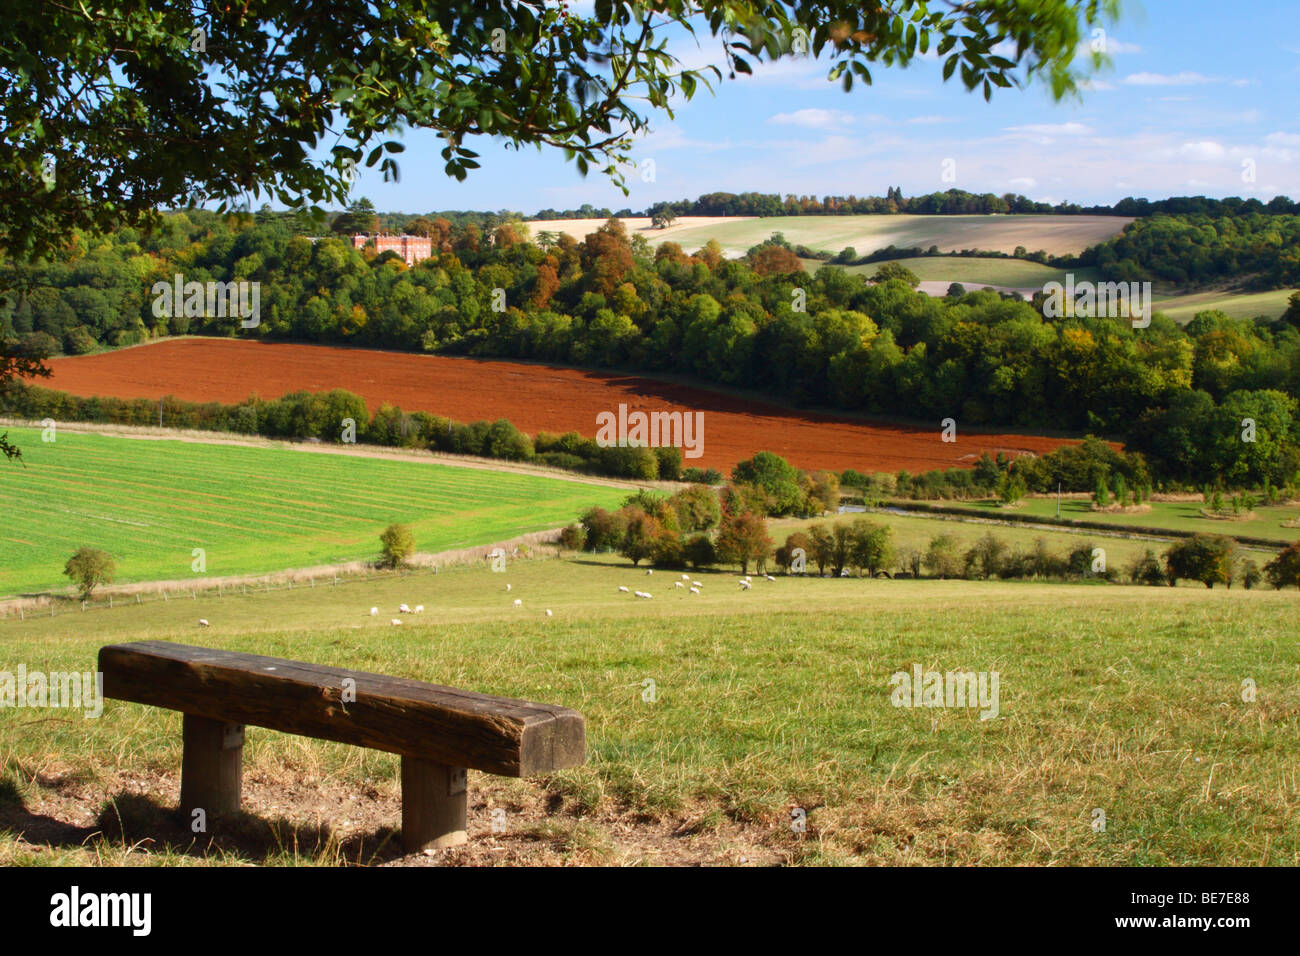 View over Hughenden Valley with Hughenden Manor in the distance. High Wycombe, Buckinghamshire, United Kingdom. - Stock Image